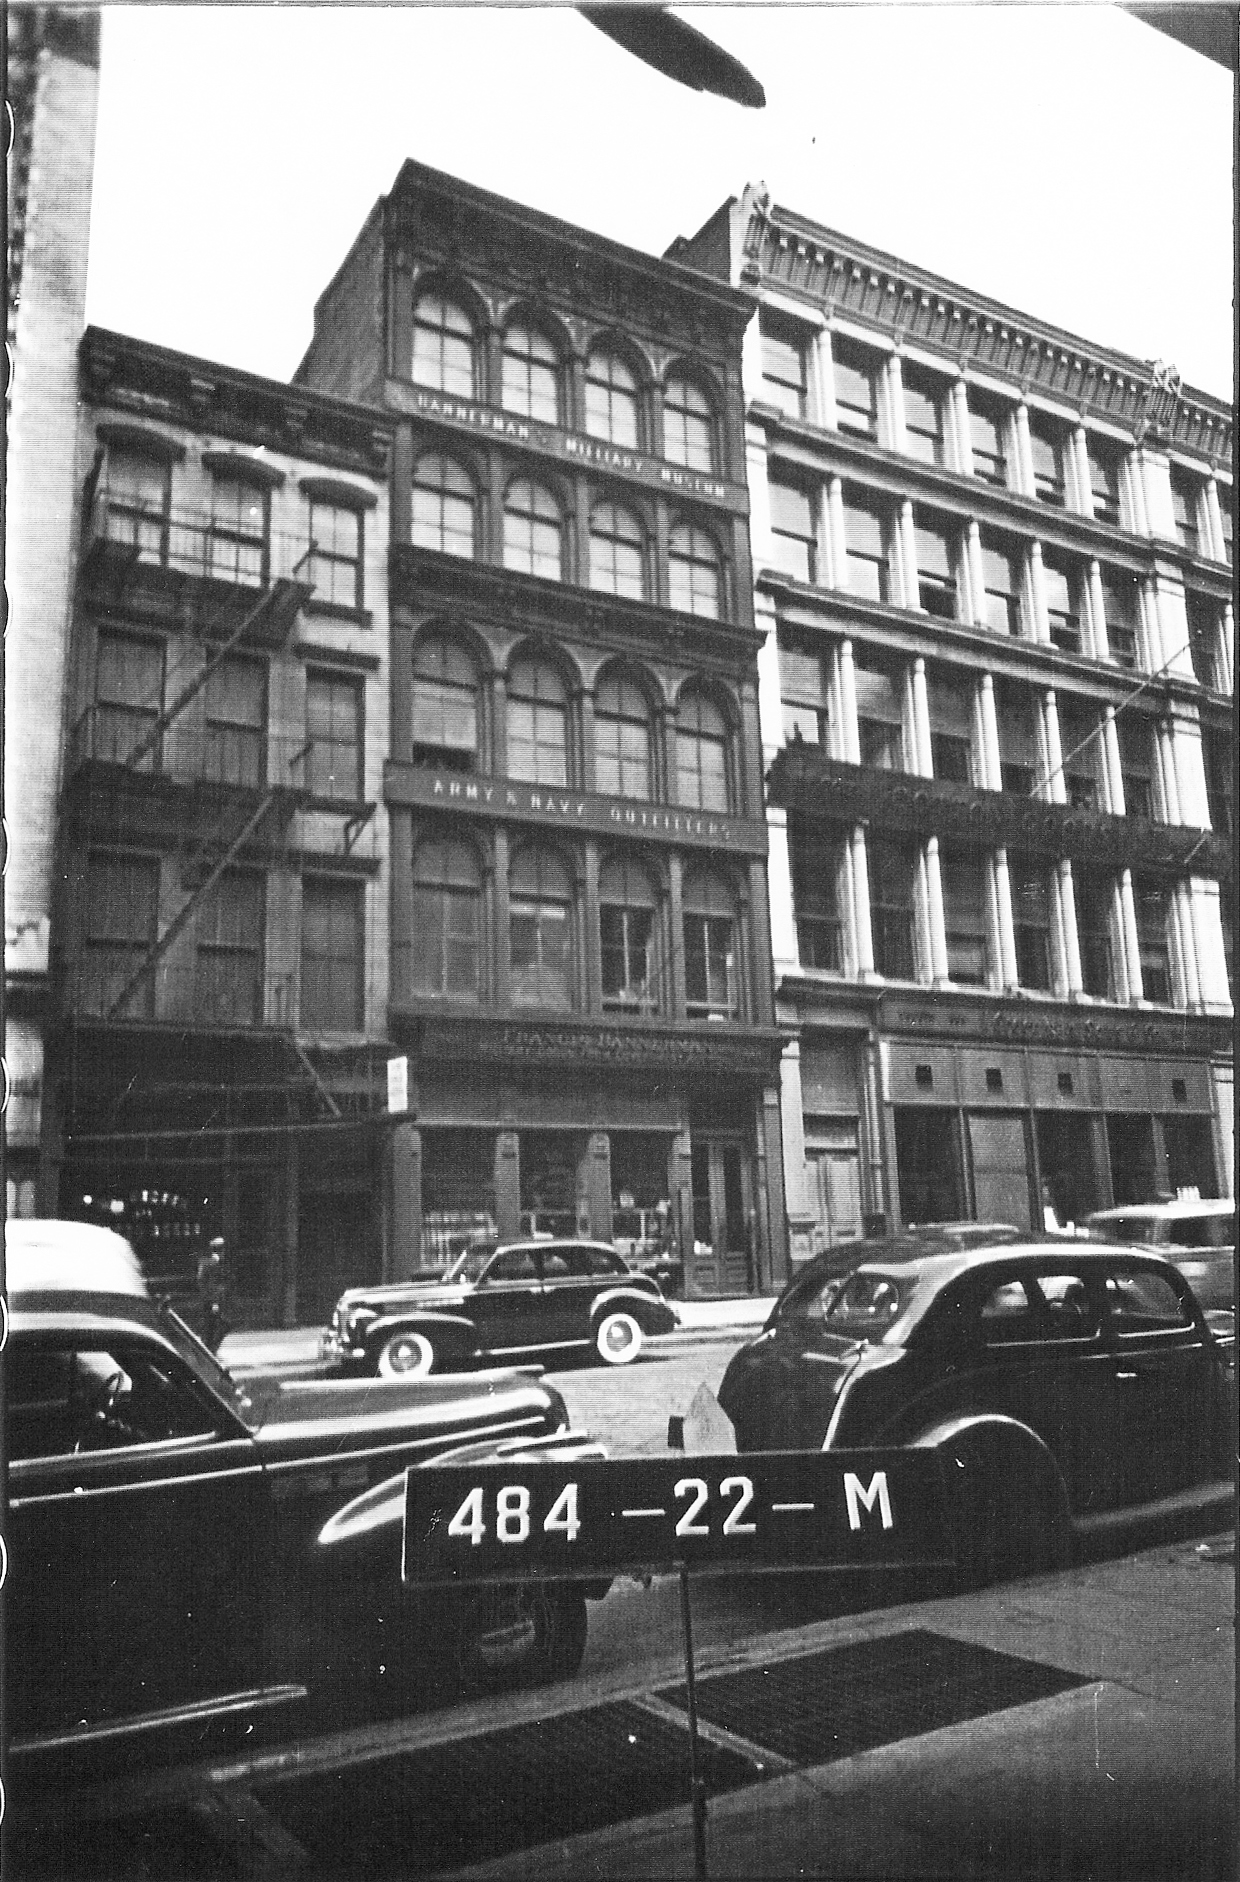 501 Broadway in 1939